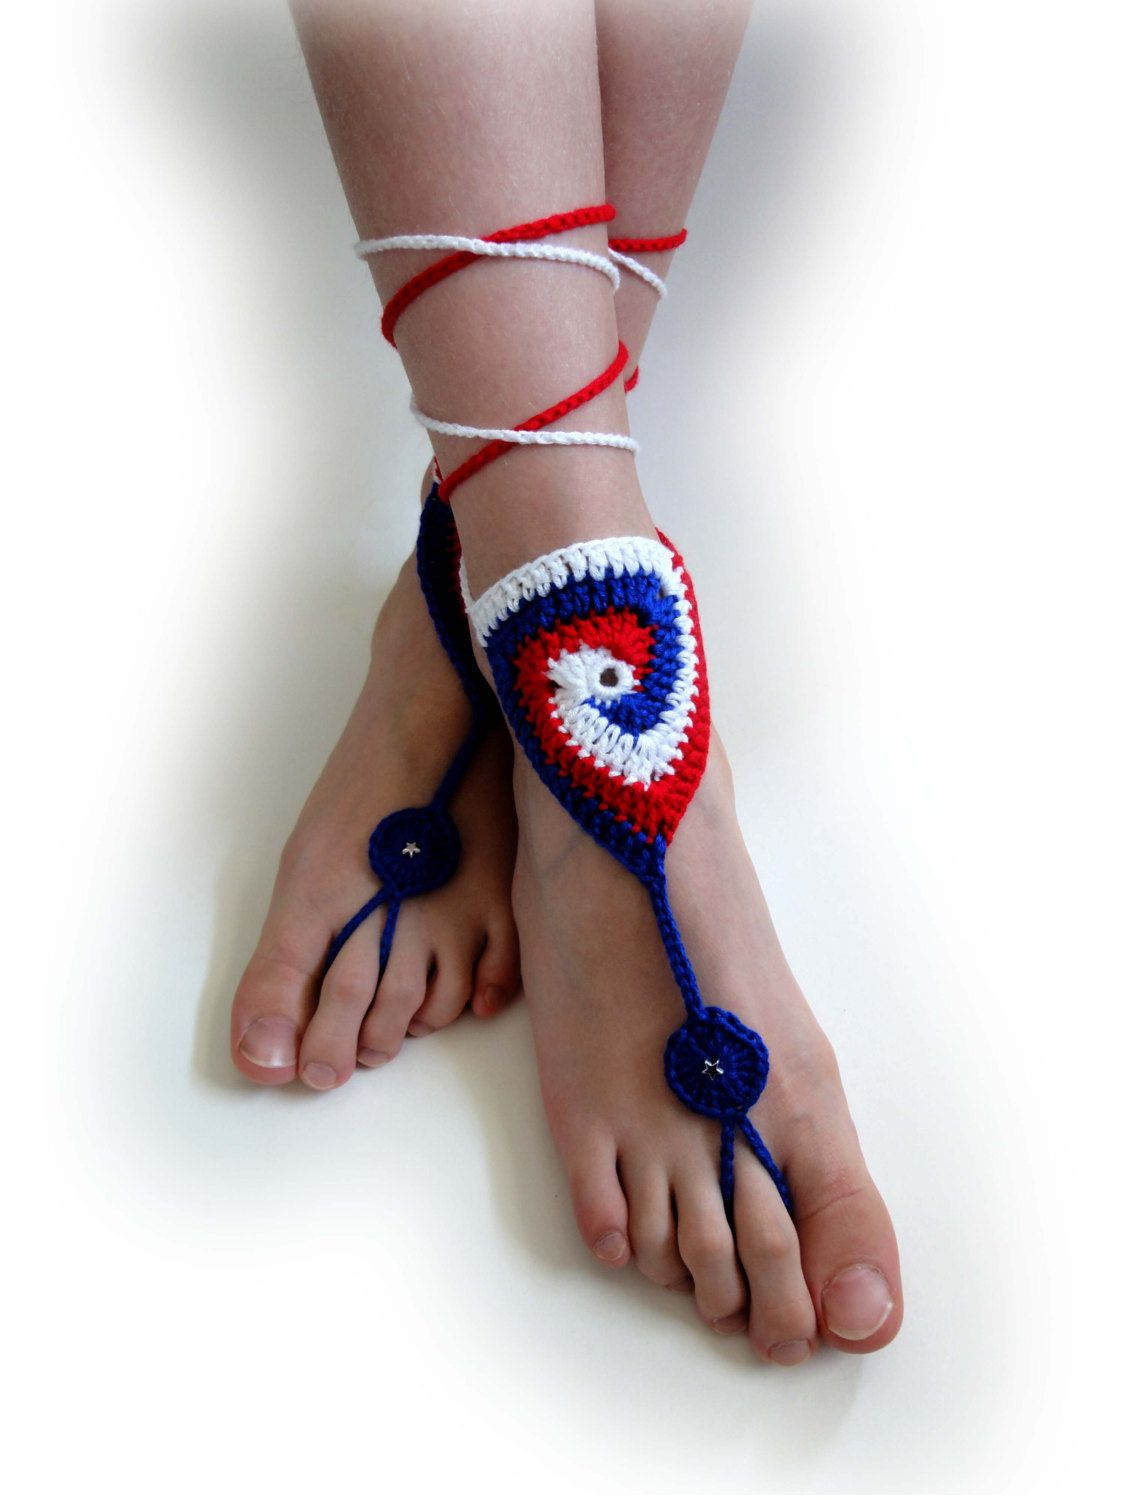 4th of July Barefoot Sandals July 4th Sandals Patriotic Barefoot Sandals Crochet Barefoot Sandals